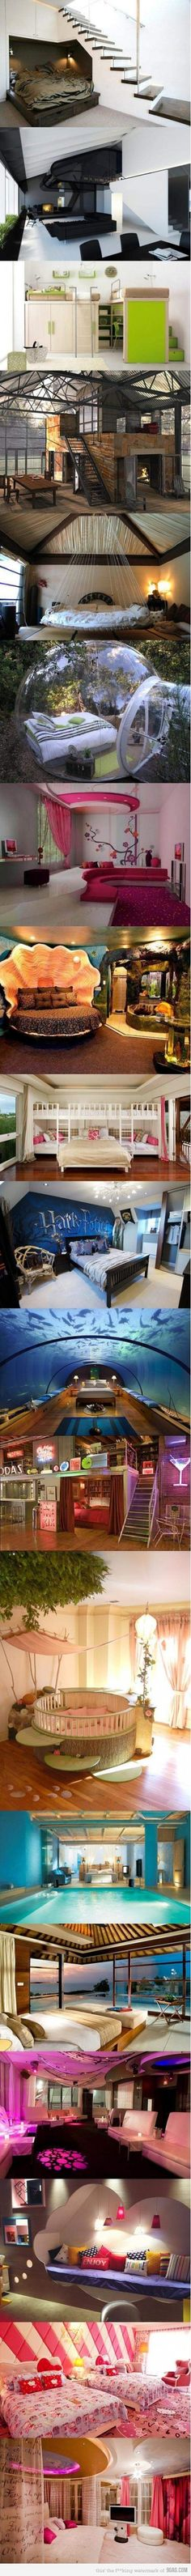 Some of these rooms are so stinking awesome.